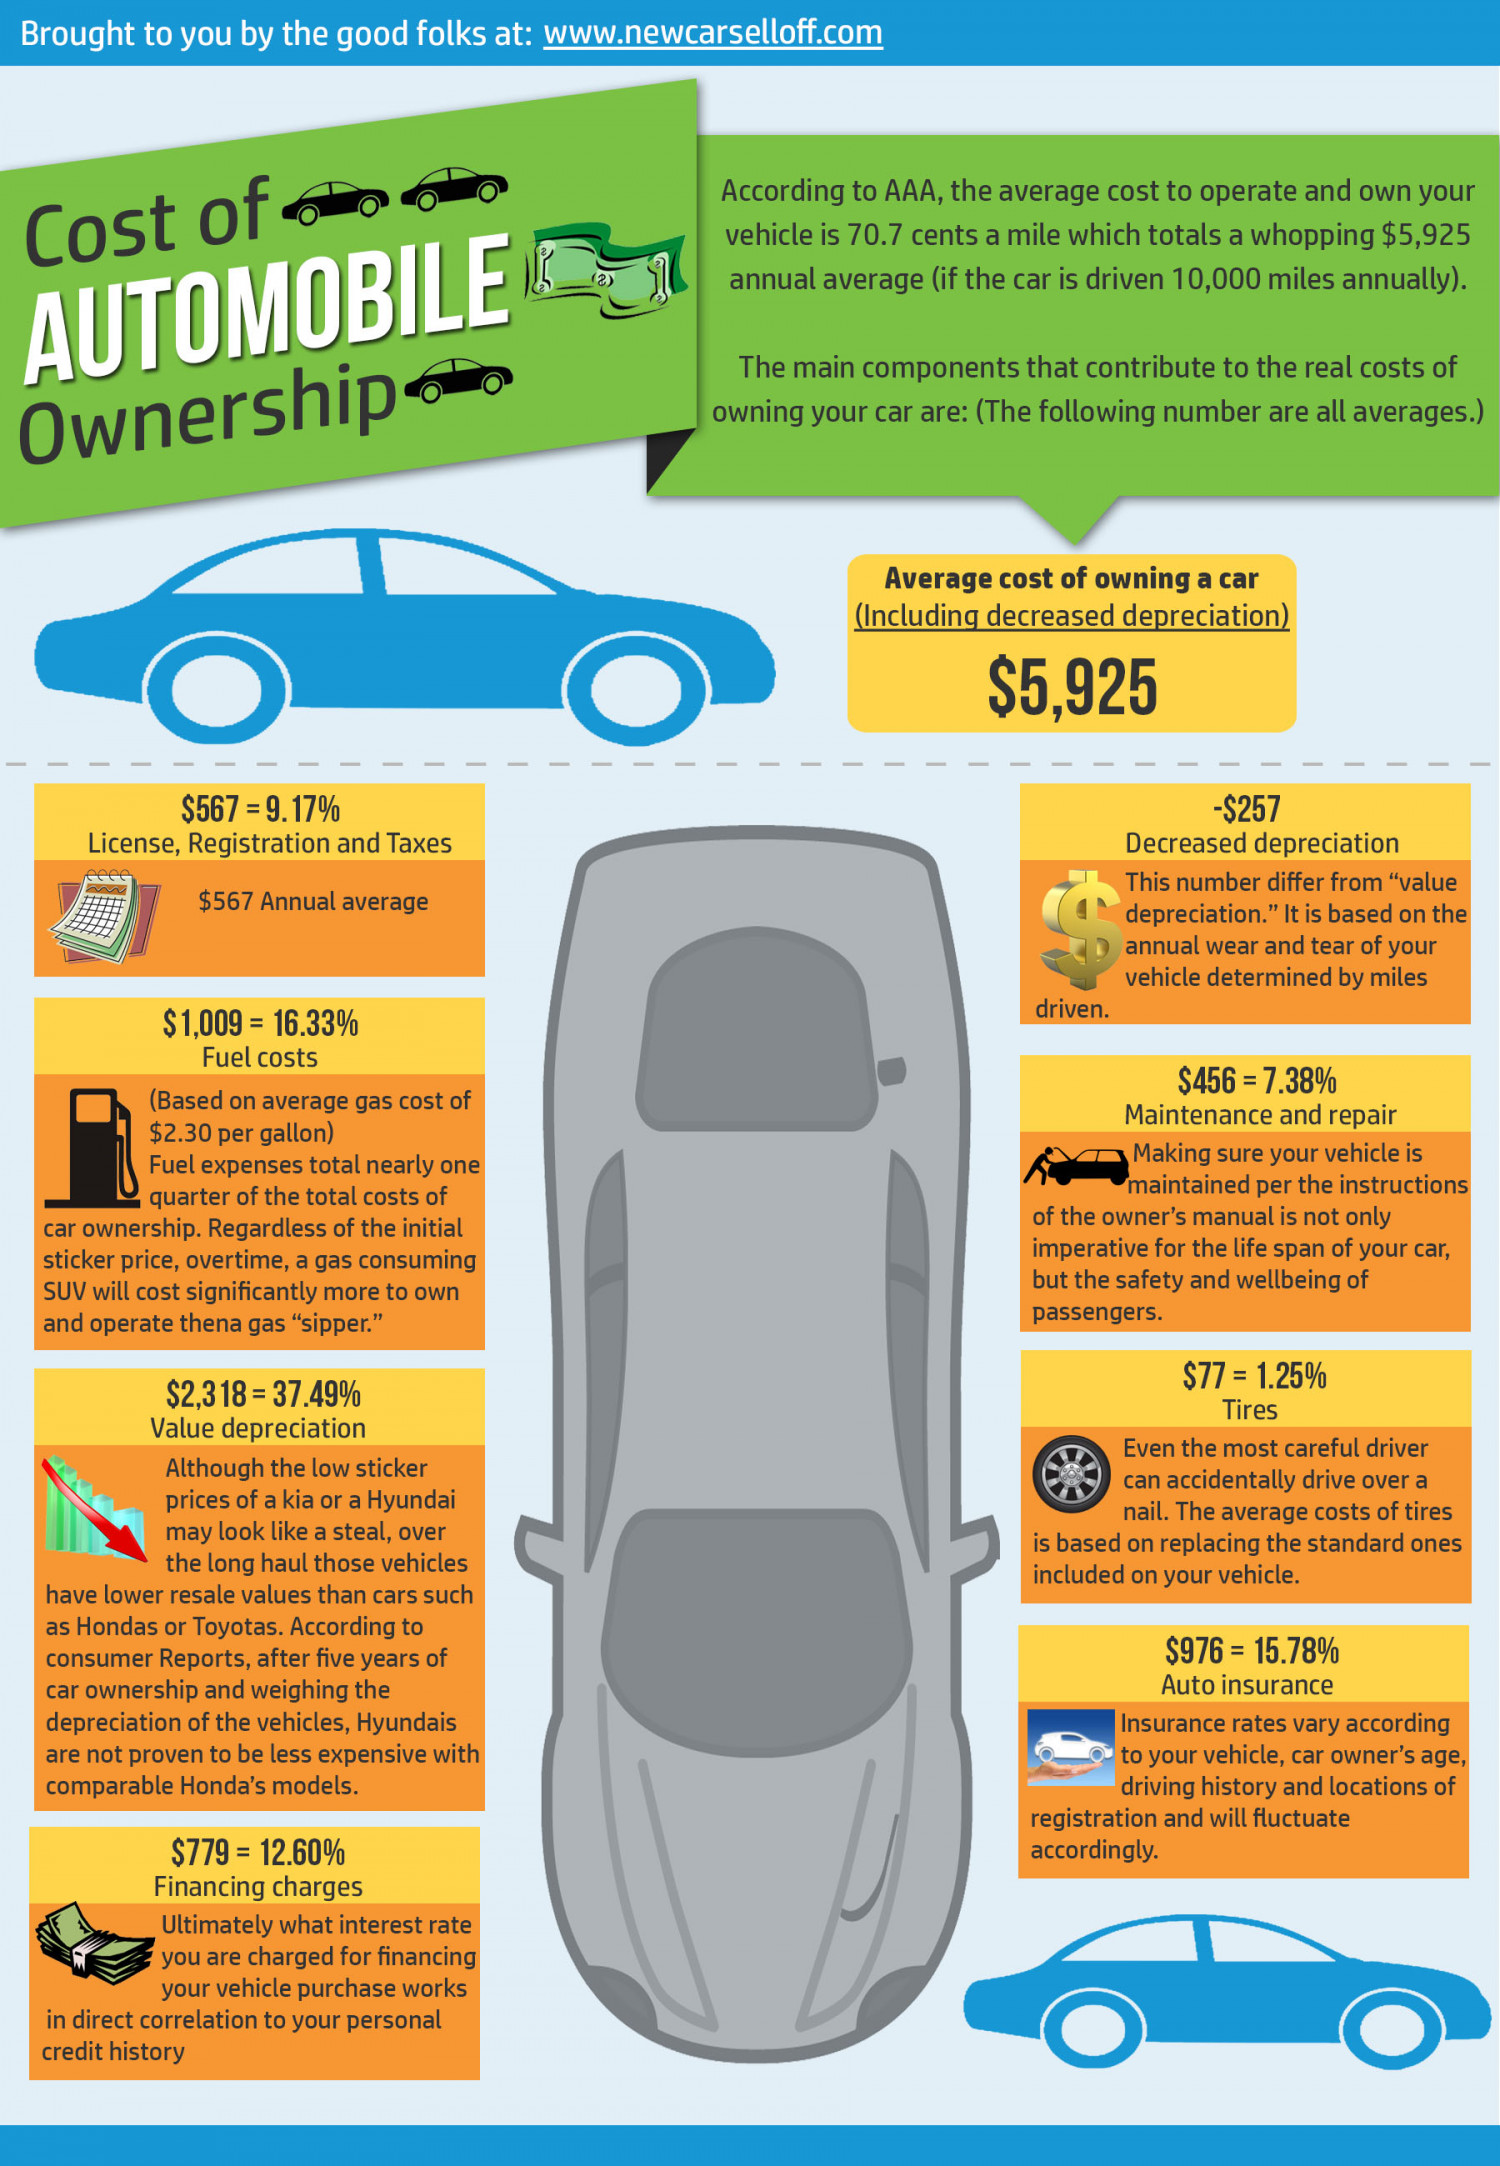 Cost of Automobile Ownership Infographic